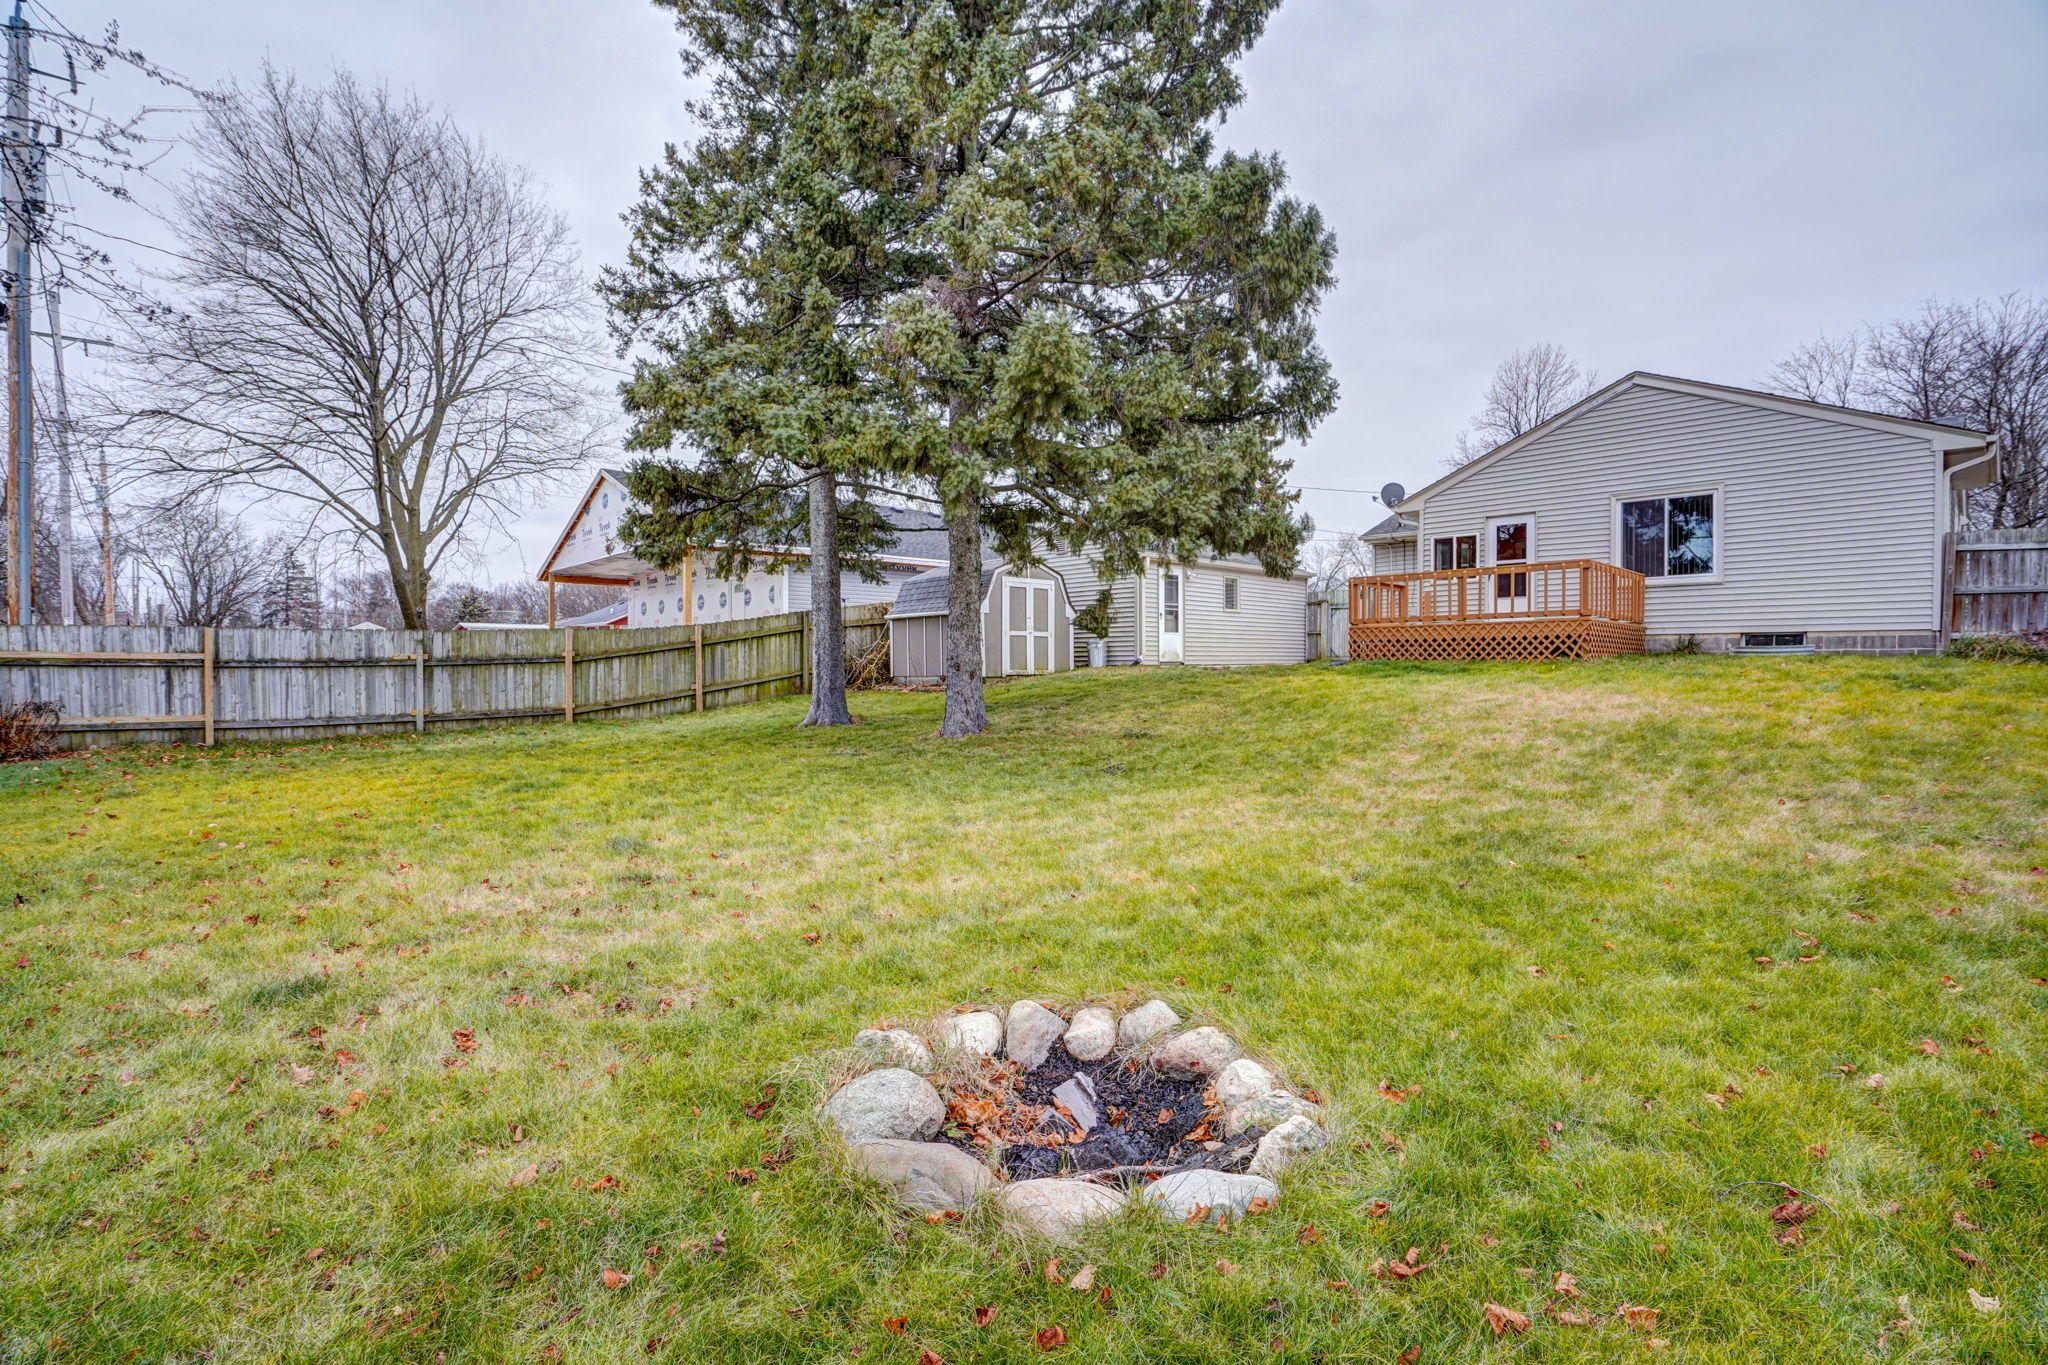 3047 94th St, Sturtevant, Wisconsin 53177, 3 Bedrooms Bedrooms, ,2 BathroomsBathrooms,Single-family,For Sale,94th St,1722606